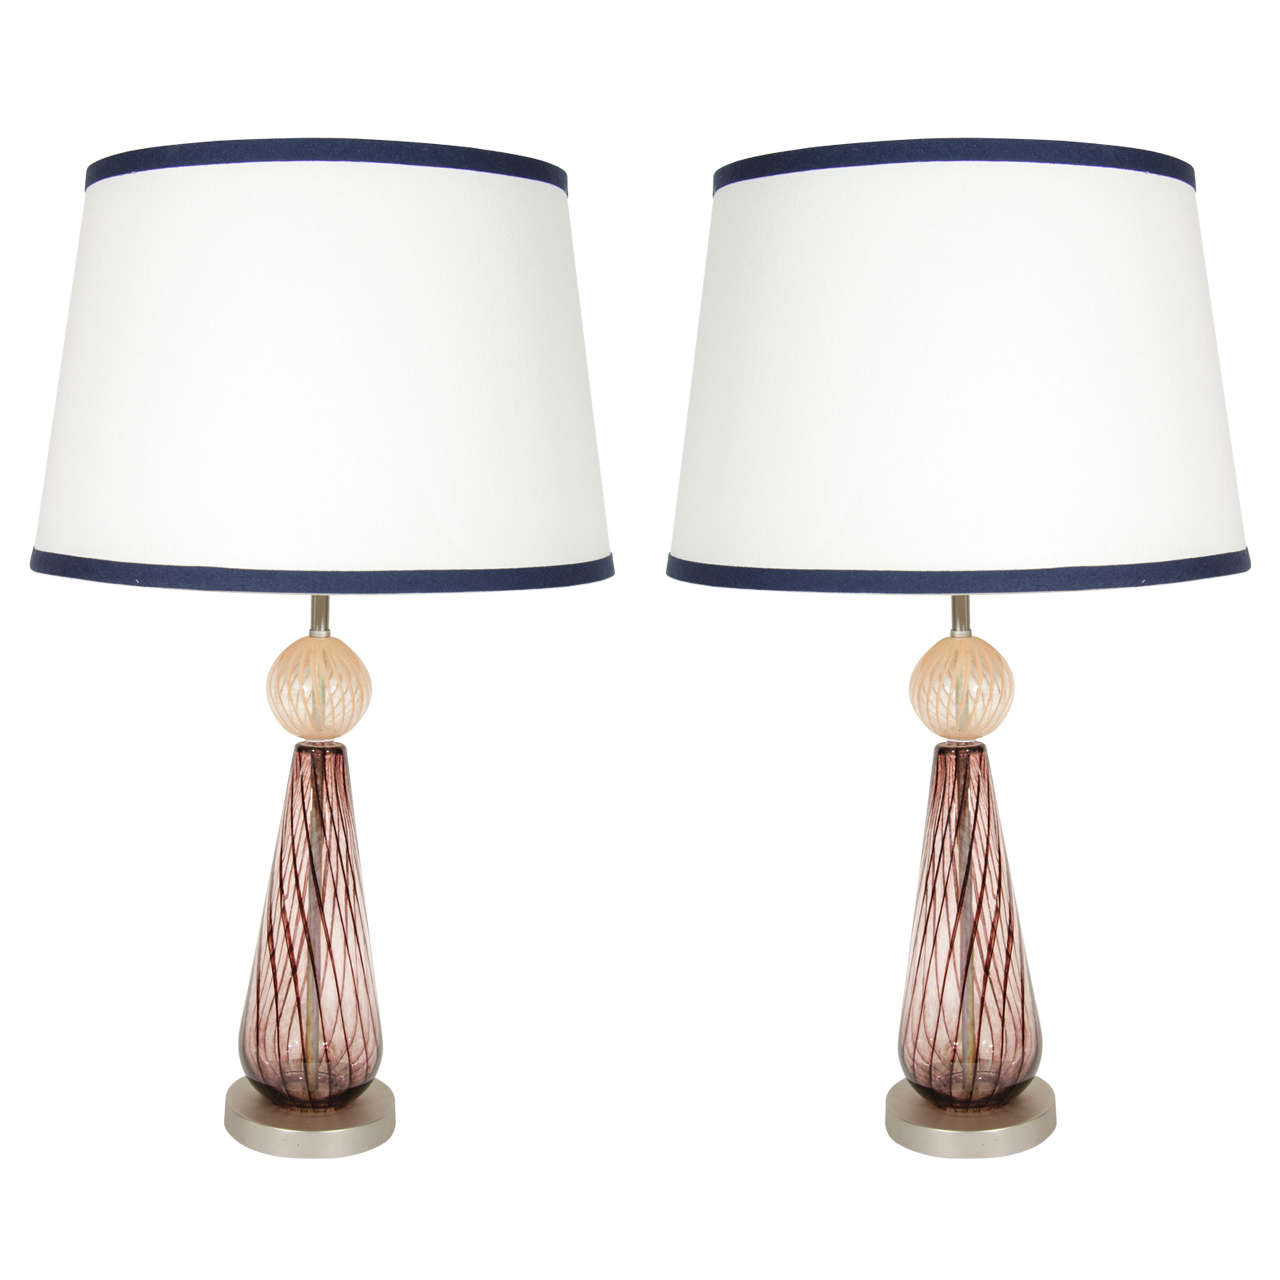 Pair of Murano Glass Lamps with Spiral Details in Aubergine